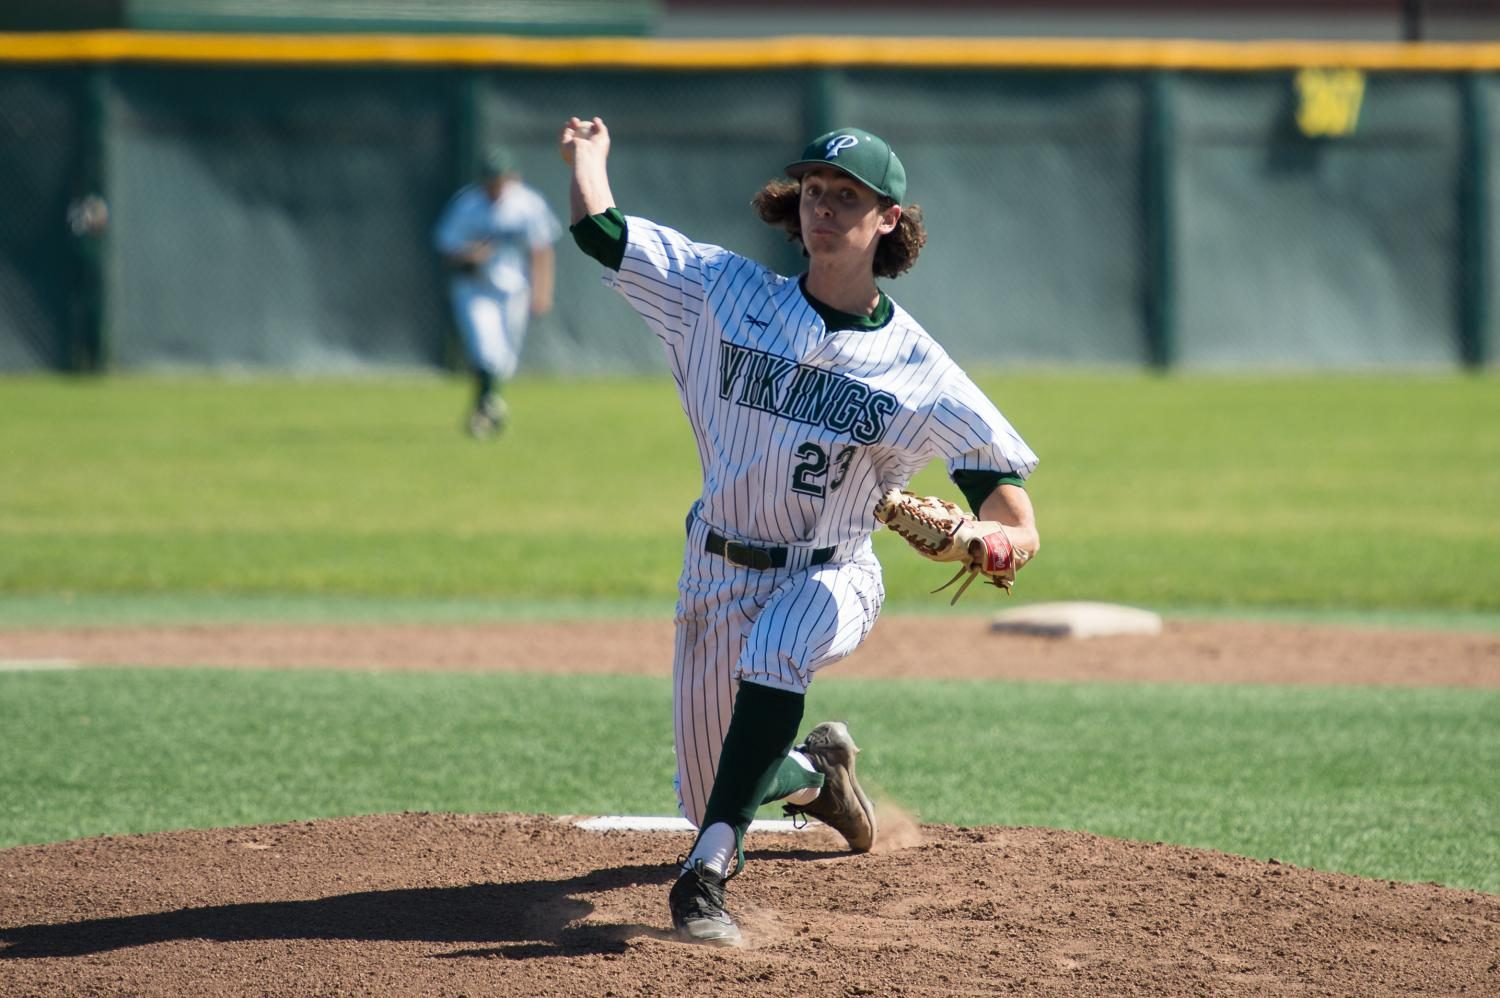 Baseball drops league playoff game to Wilcox 4-3